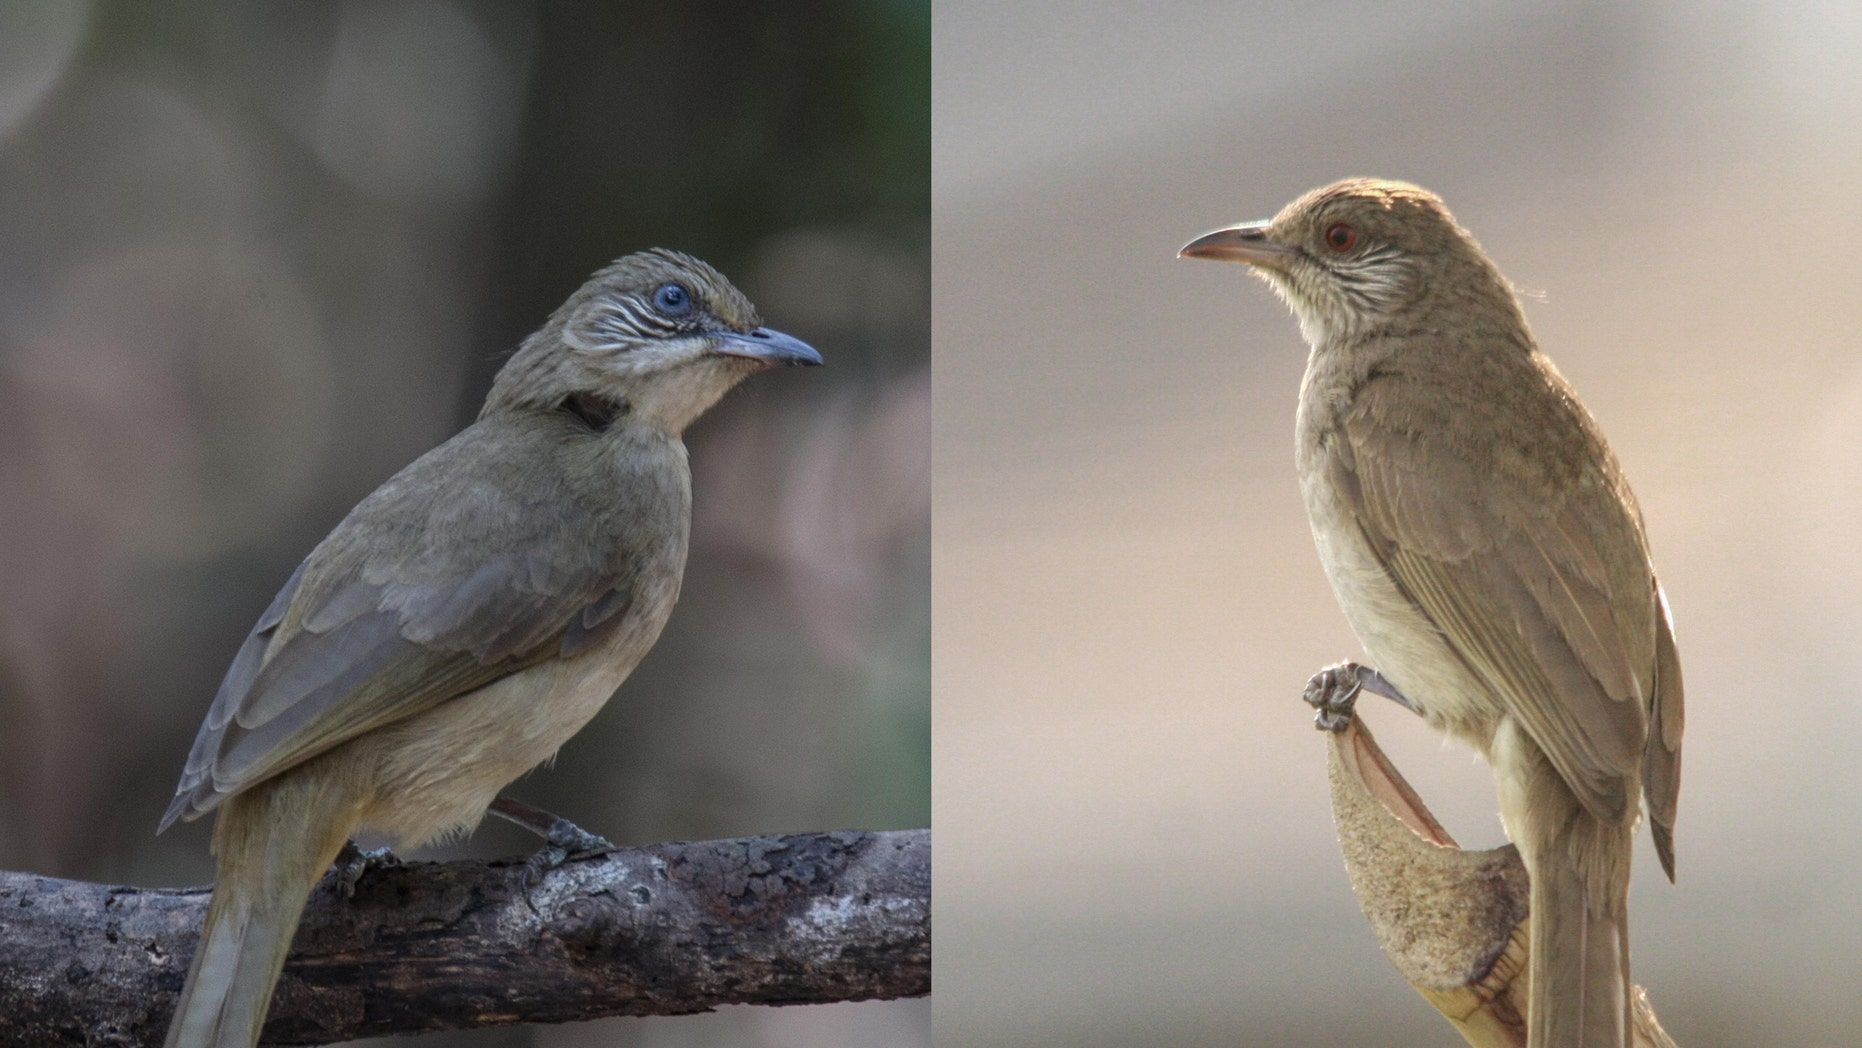 These two types of bulbul are actually different species, the Wildlife Conservation Society says. On the left is the one native to Thailand, and on the right, Myanmar.